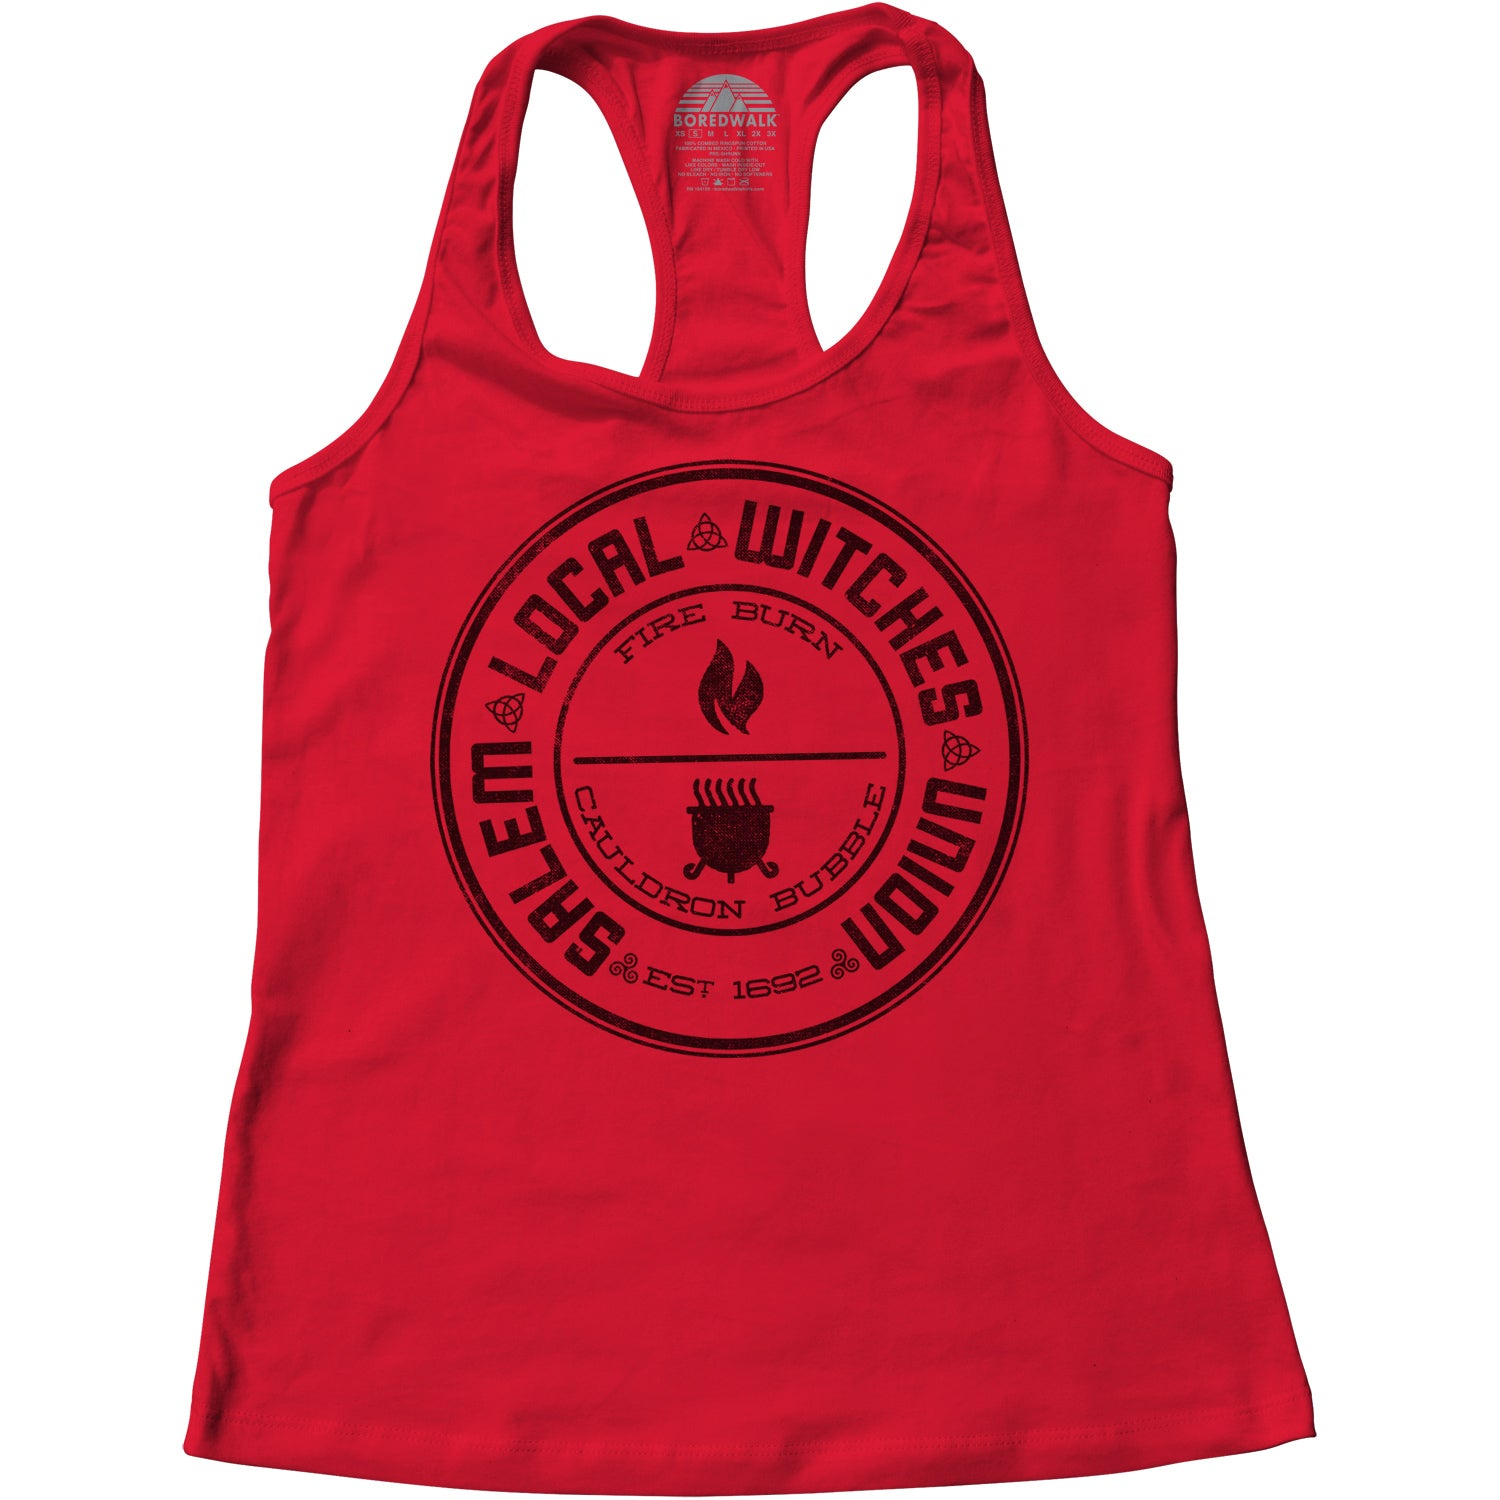 Women's Salem Local Witches Union Racerback Tank Top